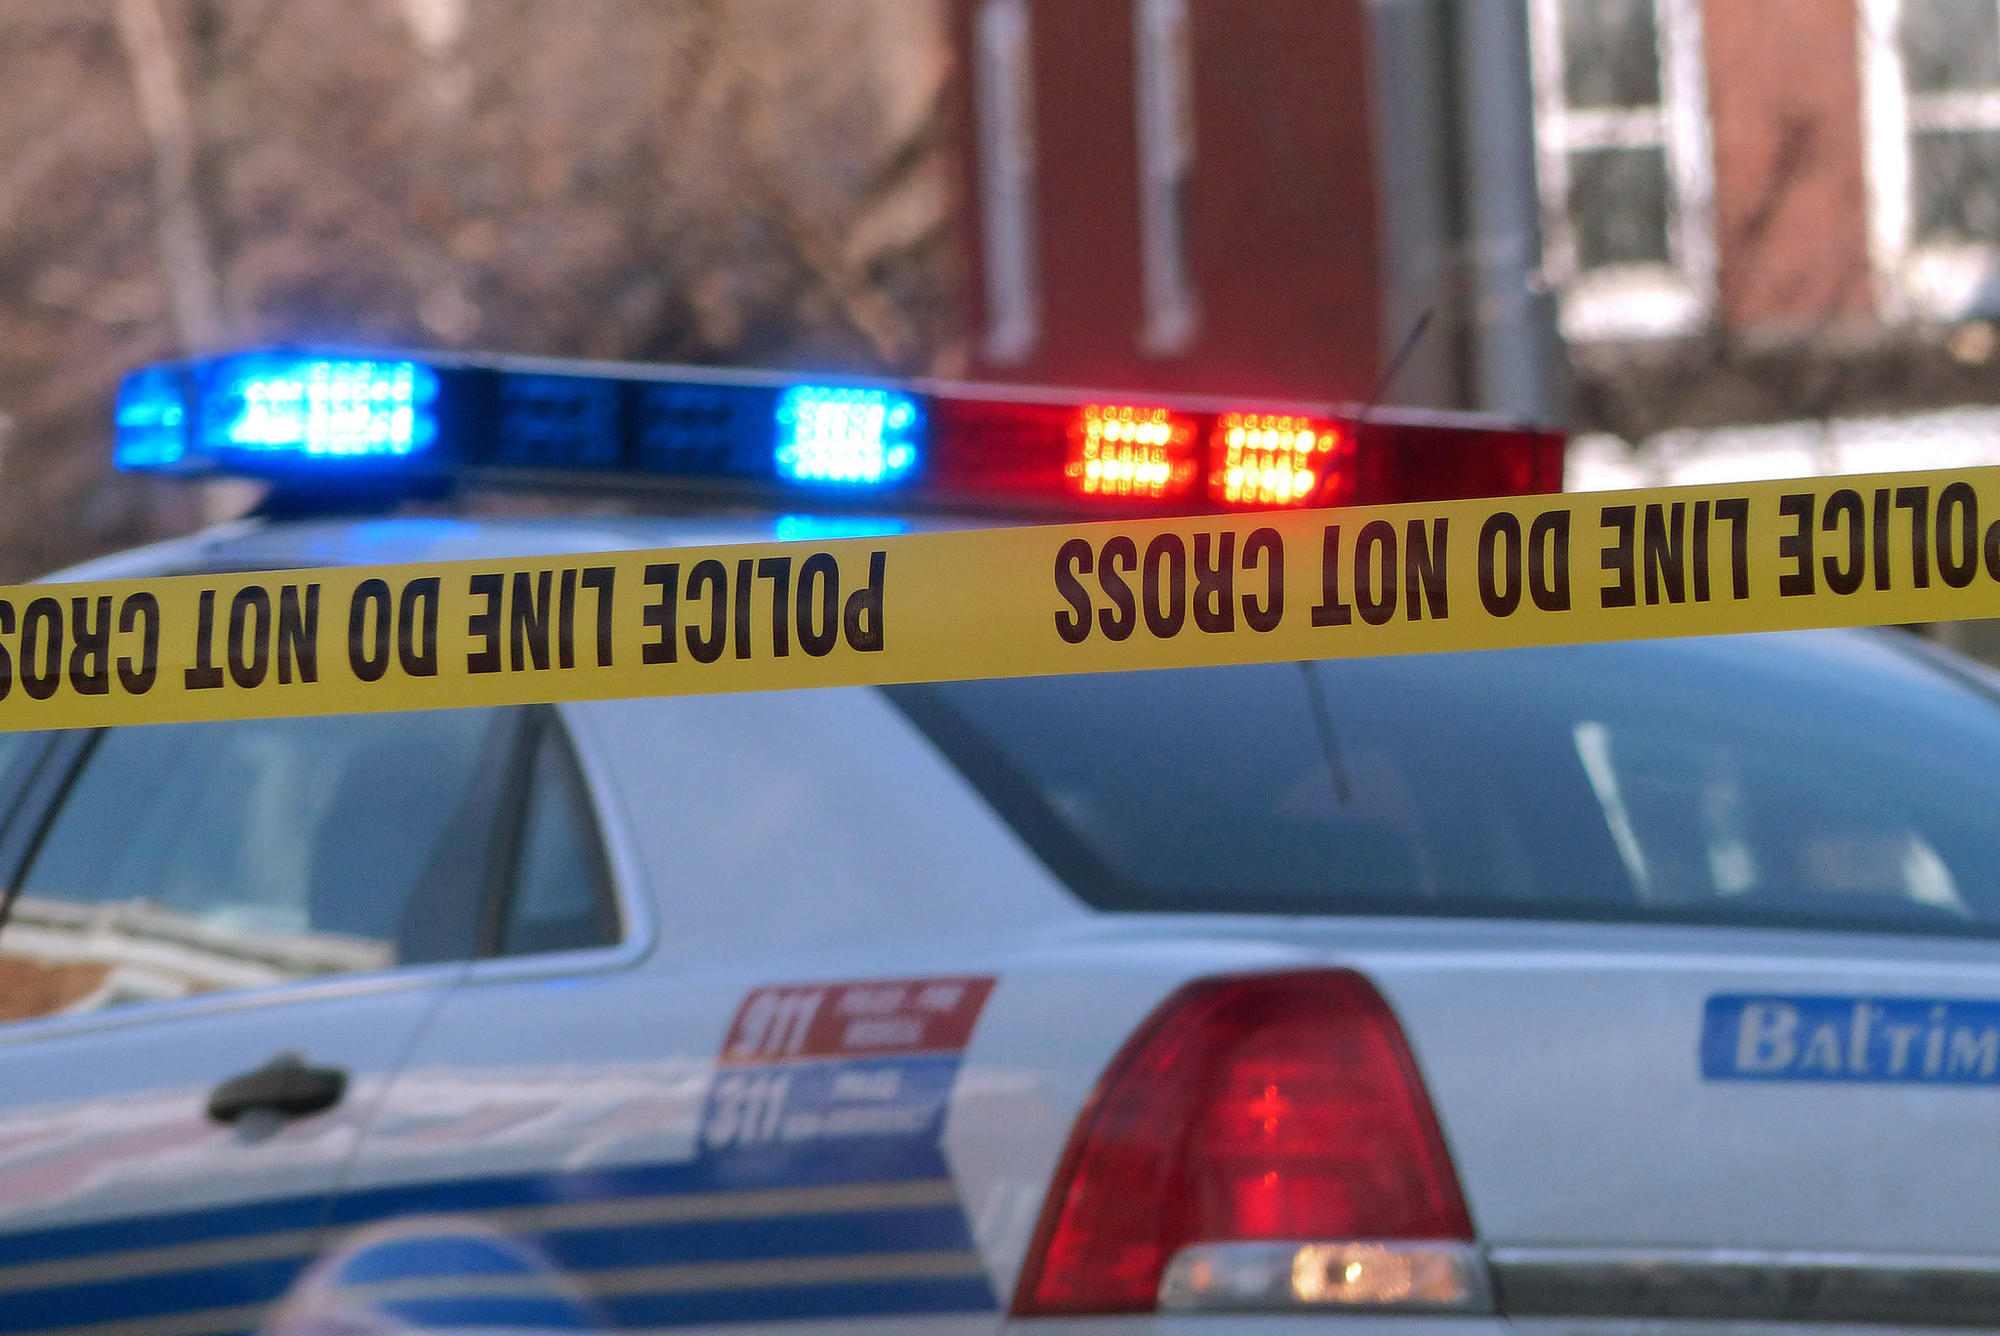 Man killed in Baltimore on Saturday was driving in funeral procession at time of shooting, police say